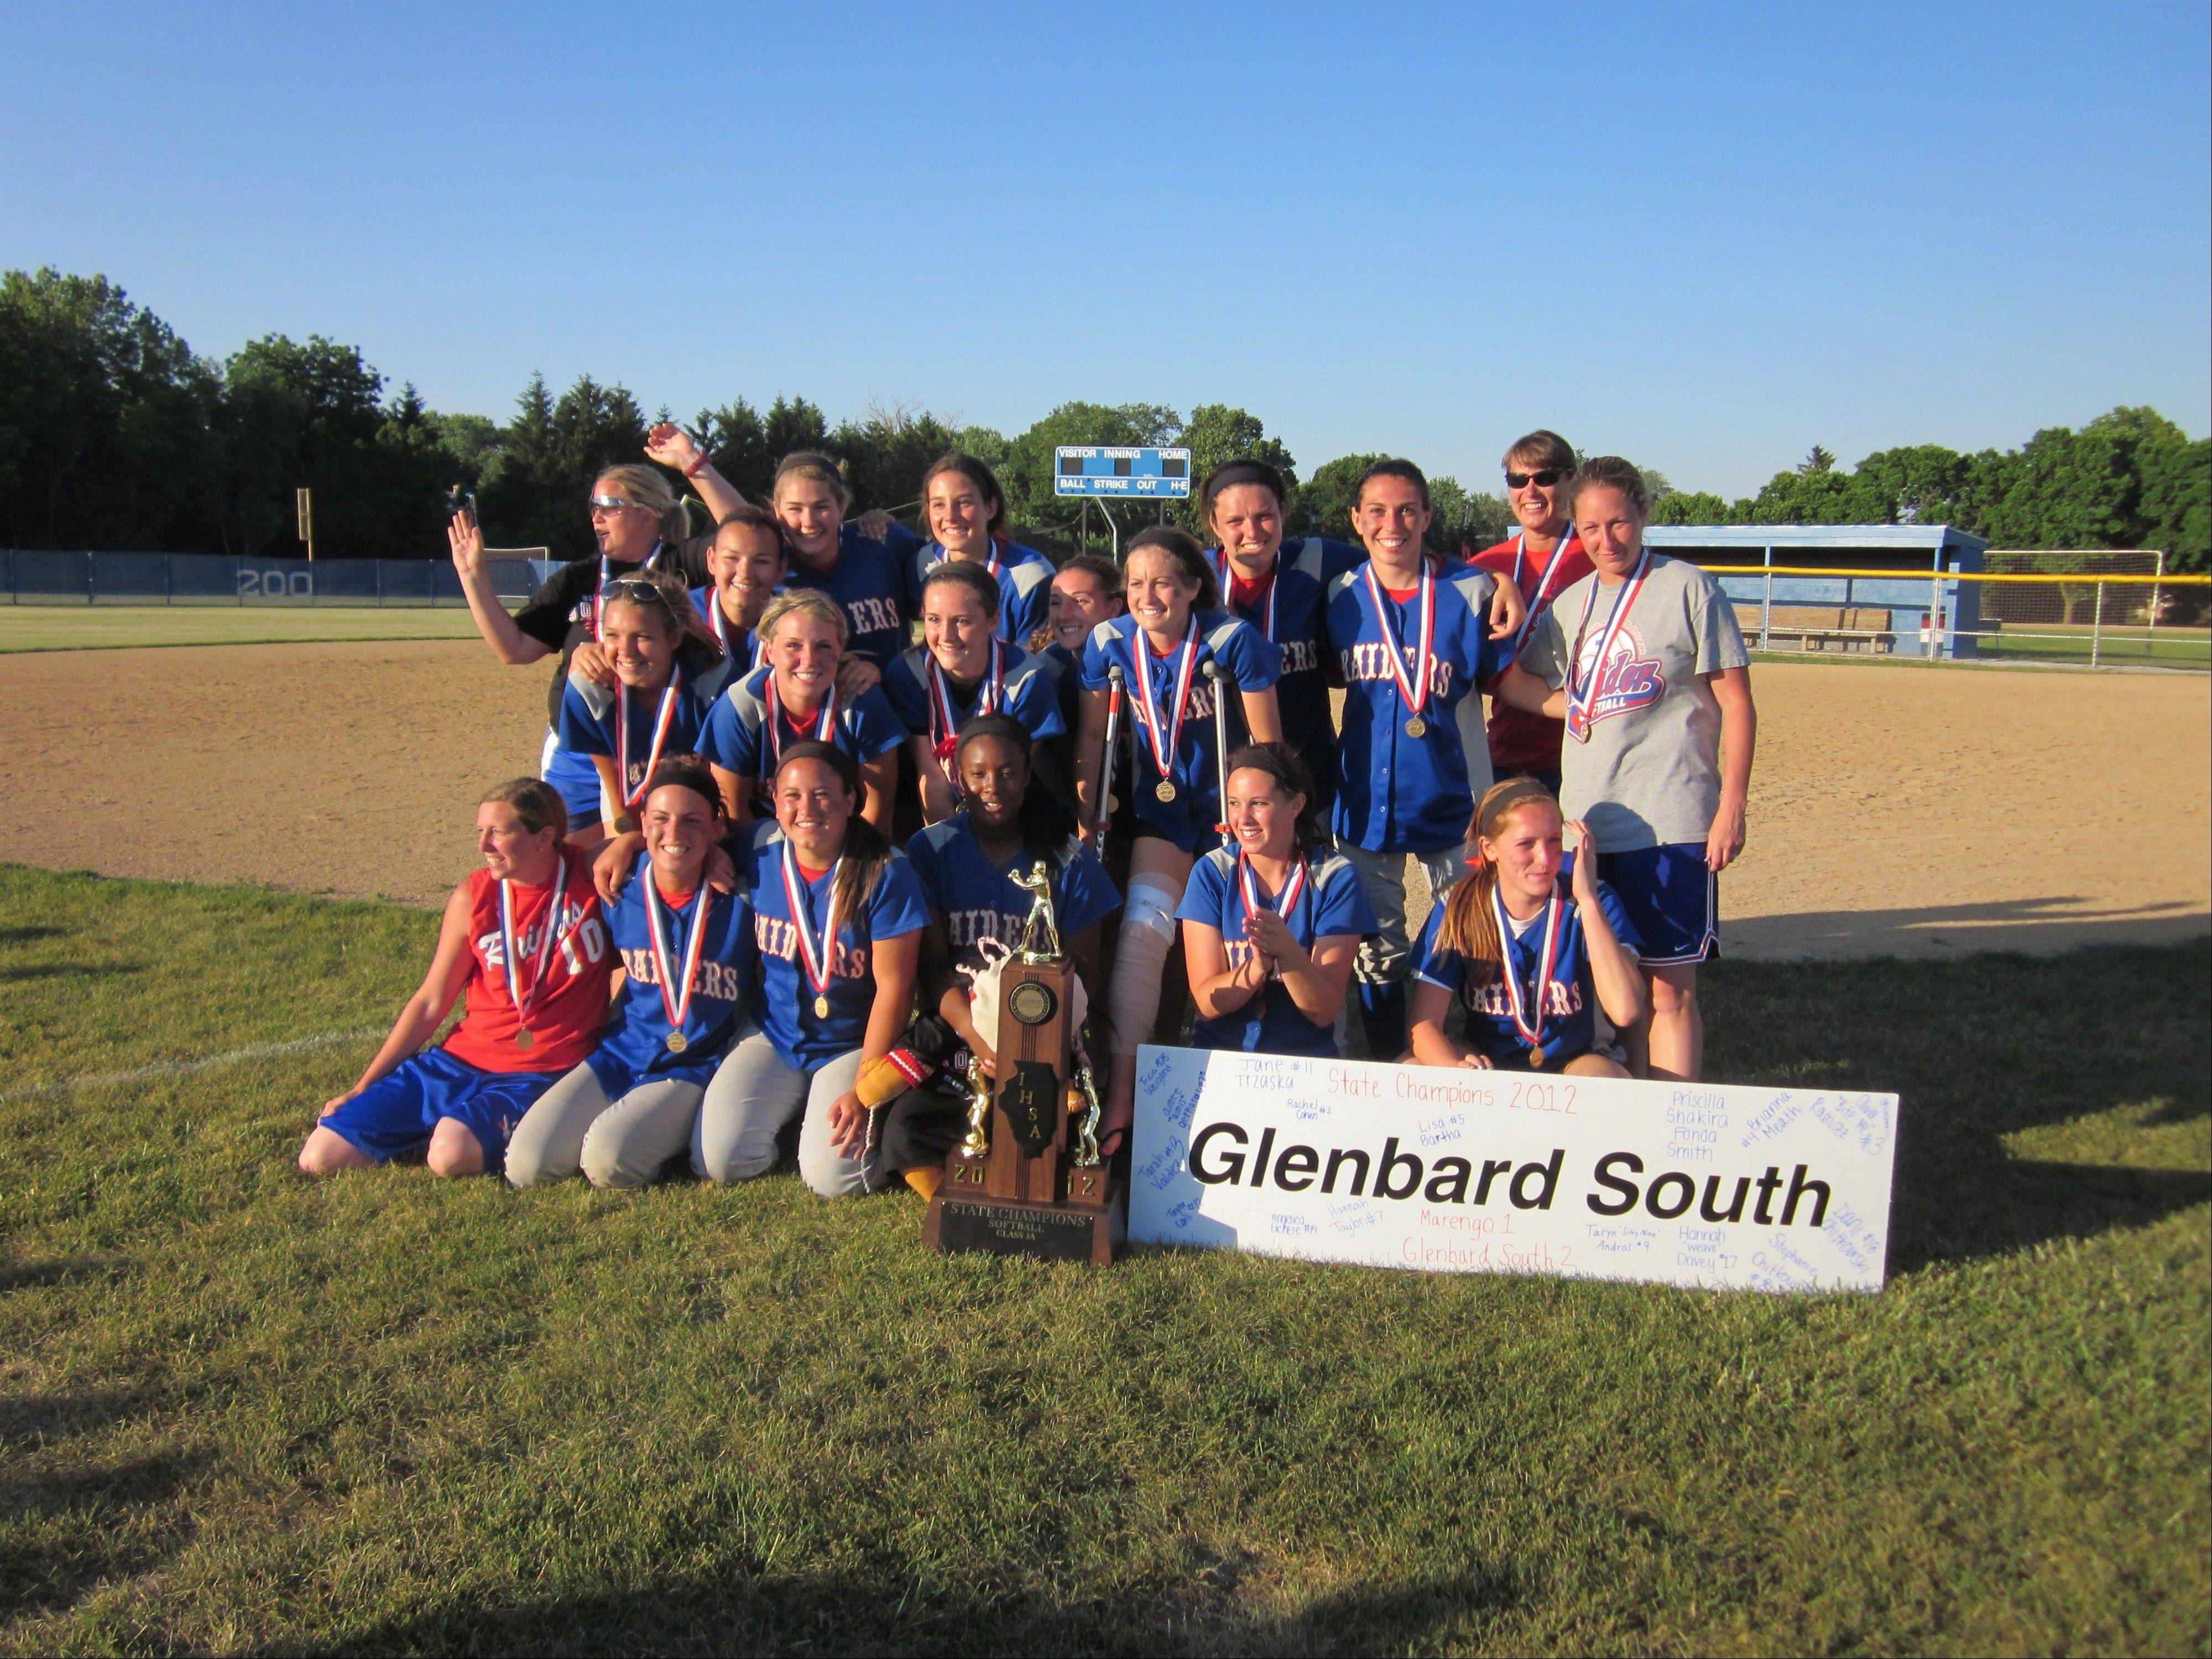 The Glenbard South softball team came home state champions Saturday.